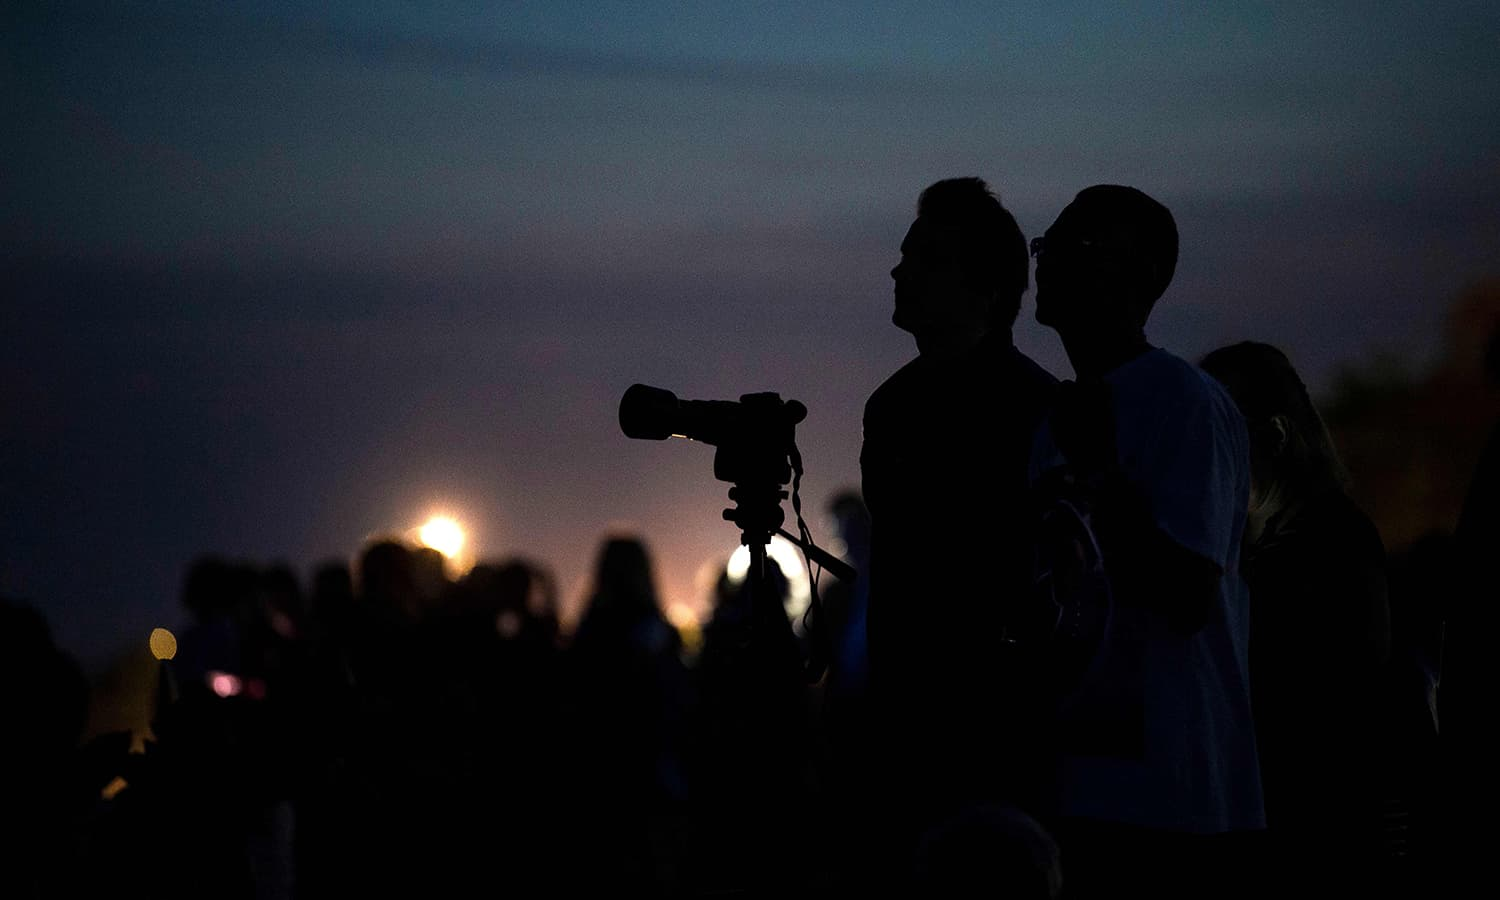 Men take pictures of the moon eclipse at Copacabana Fortress in Rio de Janeiro, Brazil. — AFP